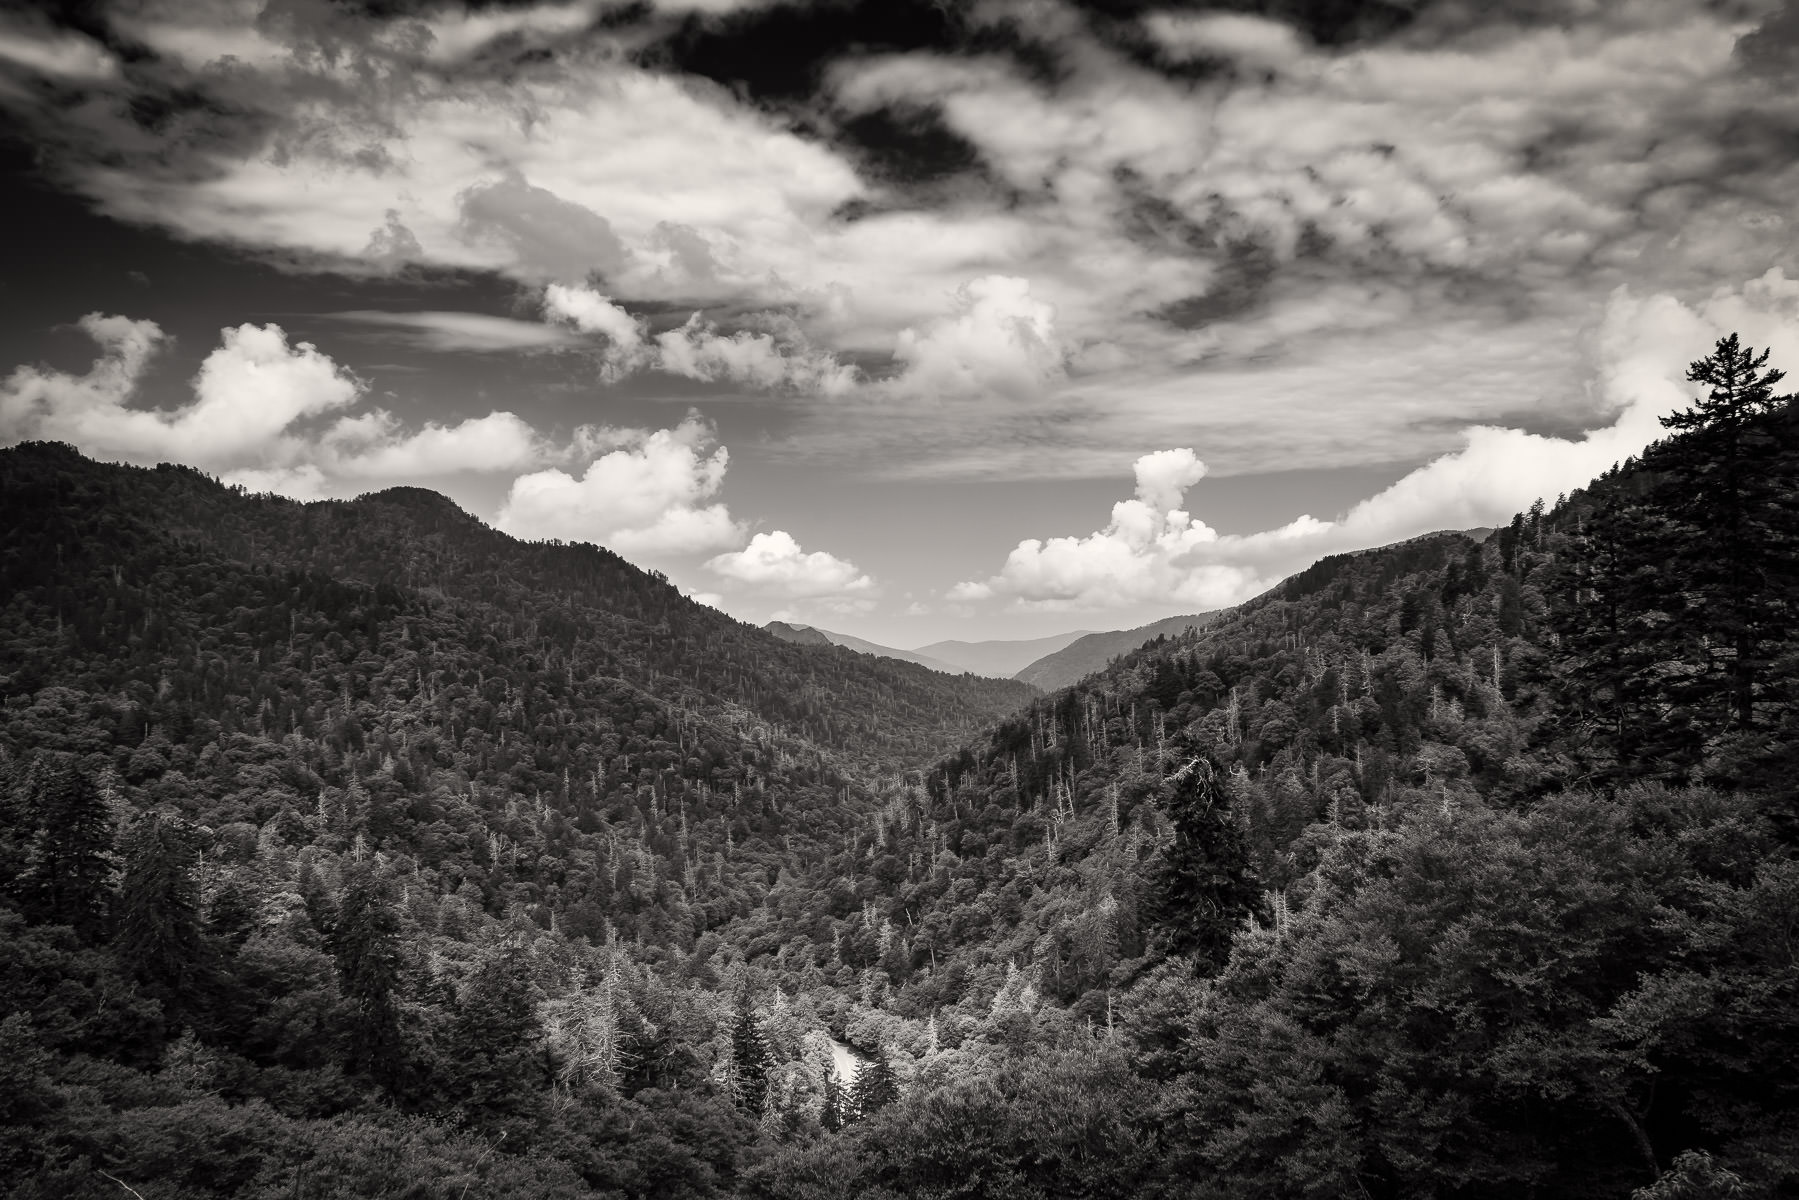 The tree-covered mountains of the Great Smoky Mountain National Park stretch into the distance.